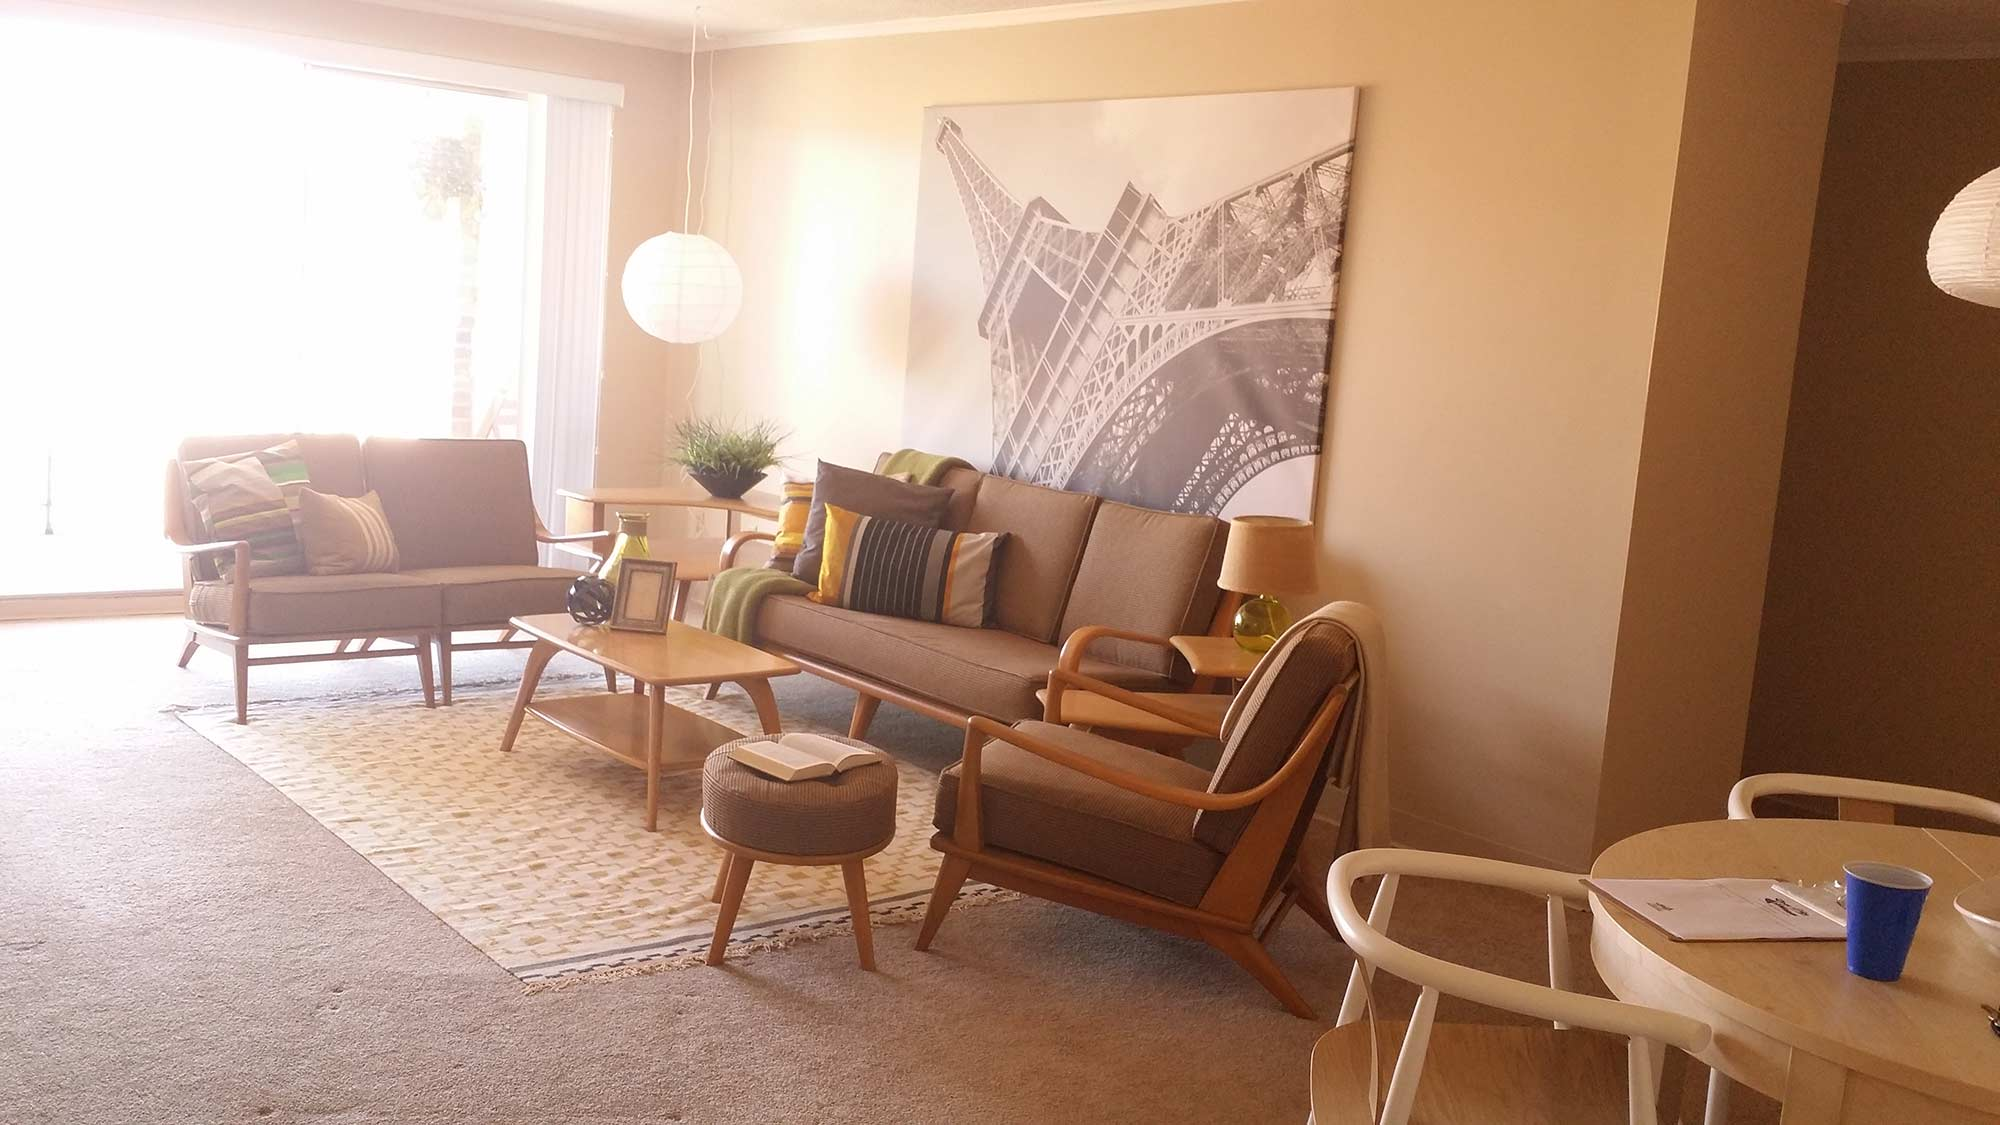 Rivers Edge Apartments after staging living room